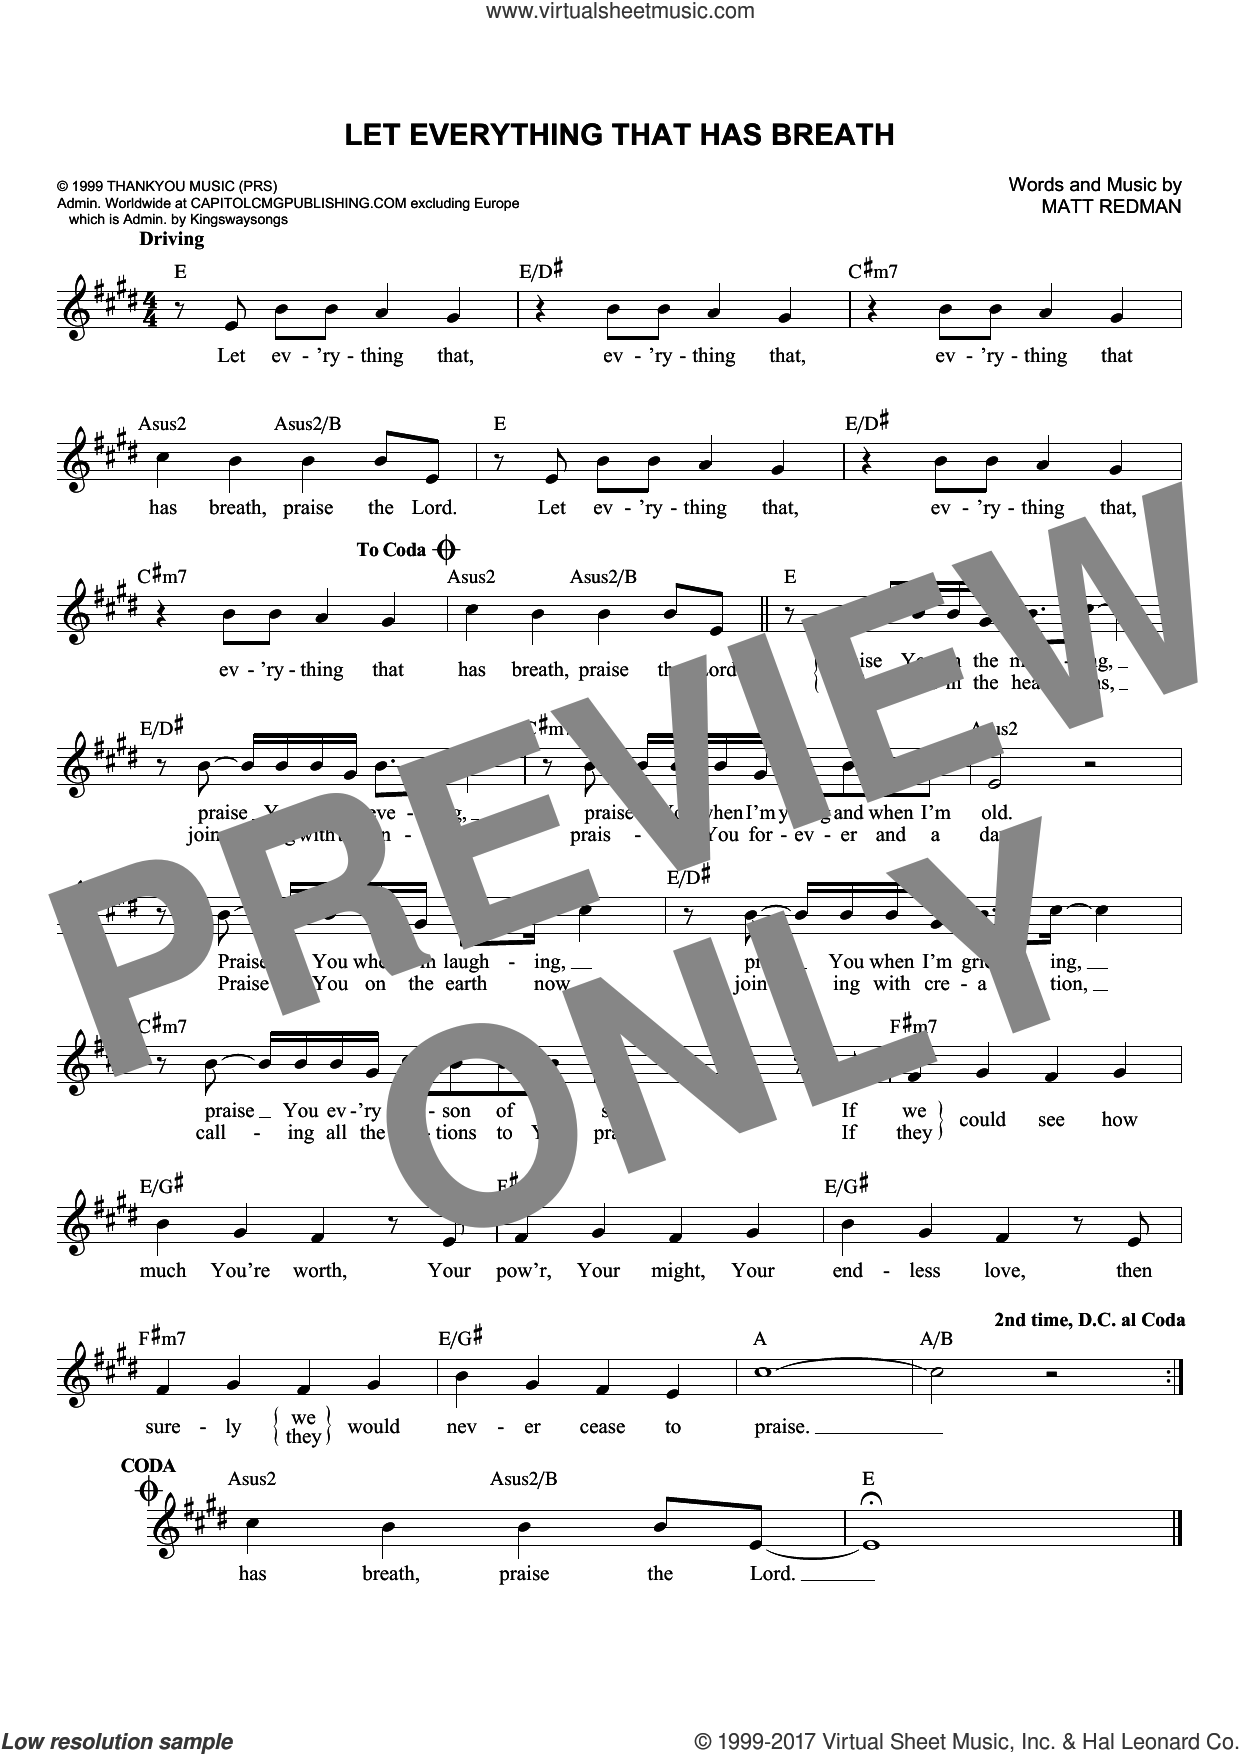 Let Everything That Has Breath sheet music for voice and other instruments (fake book) by Matt Redman and Passion, intermediate